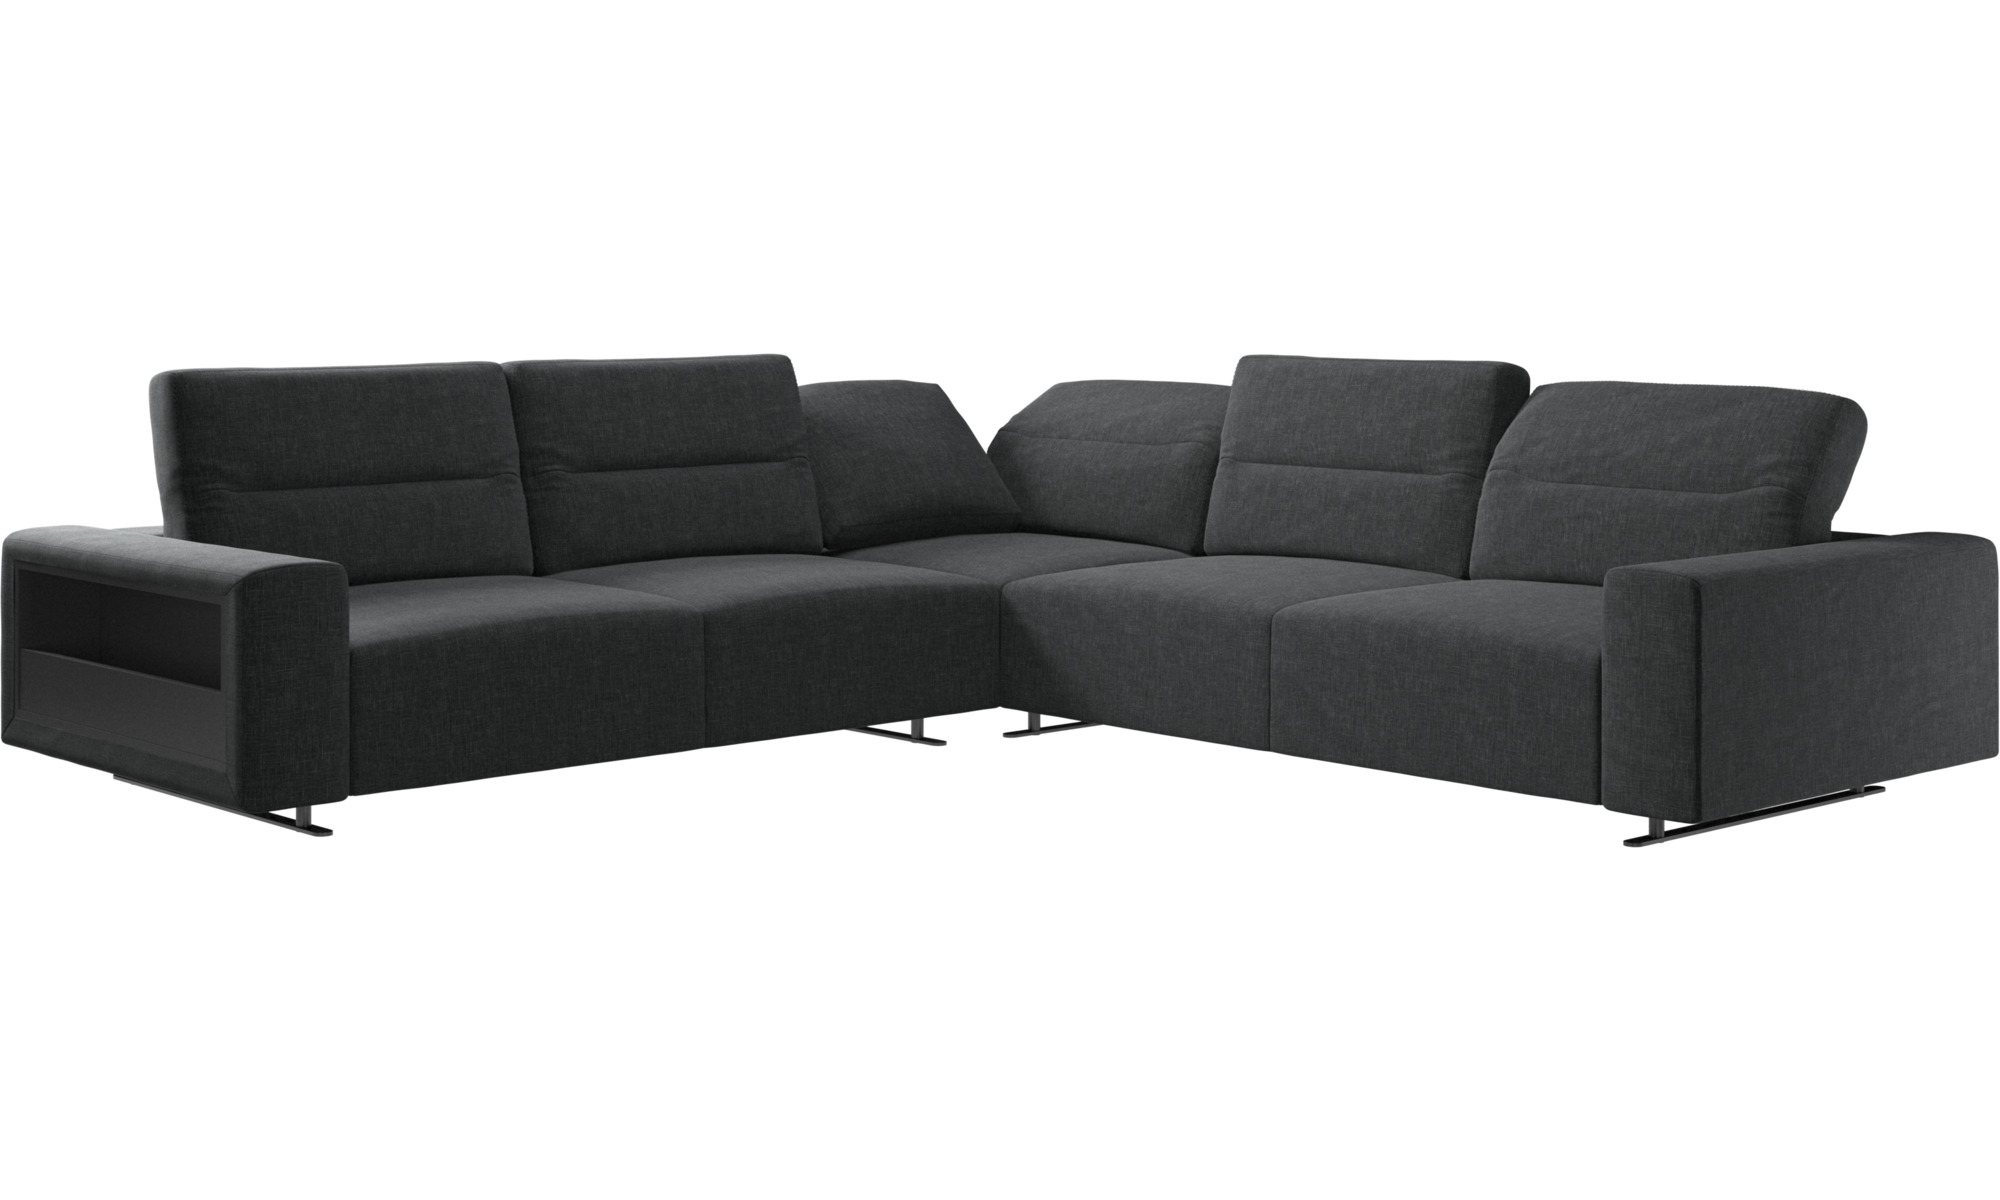 sofa hampton ecksofa mit verstellbarer r ckenlehne und stauraum auf. Black Bedroom Furniture Sets. Home Design Ideas